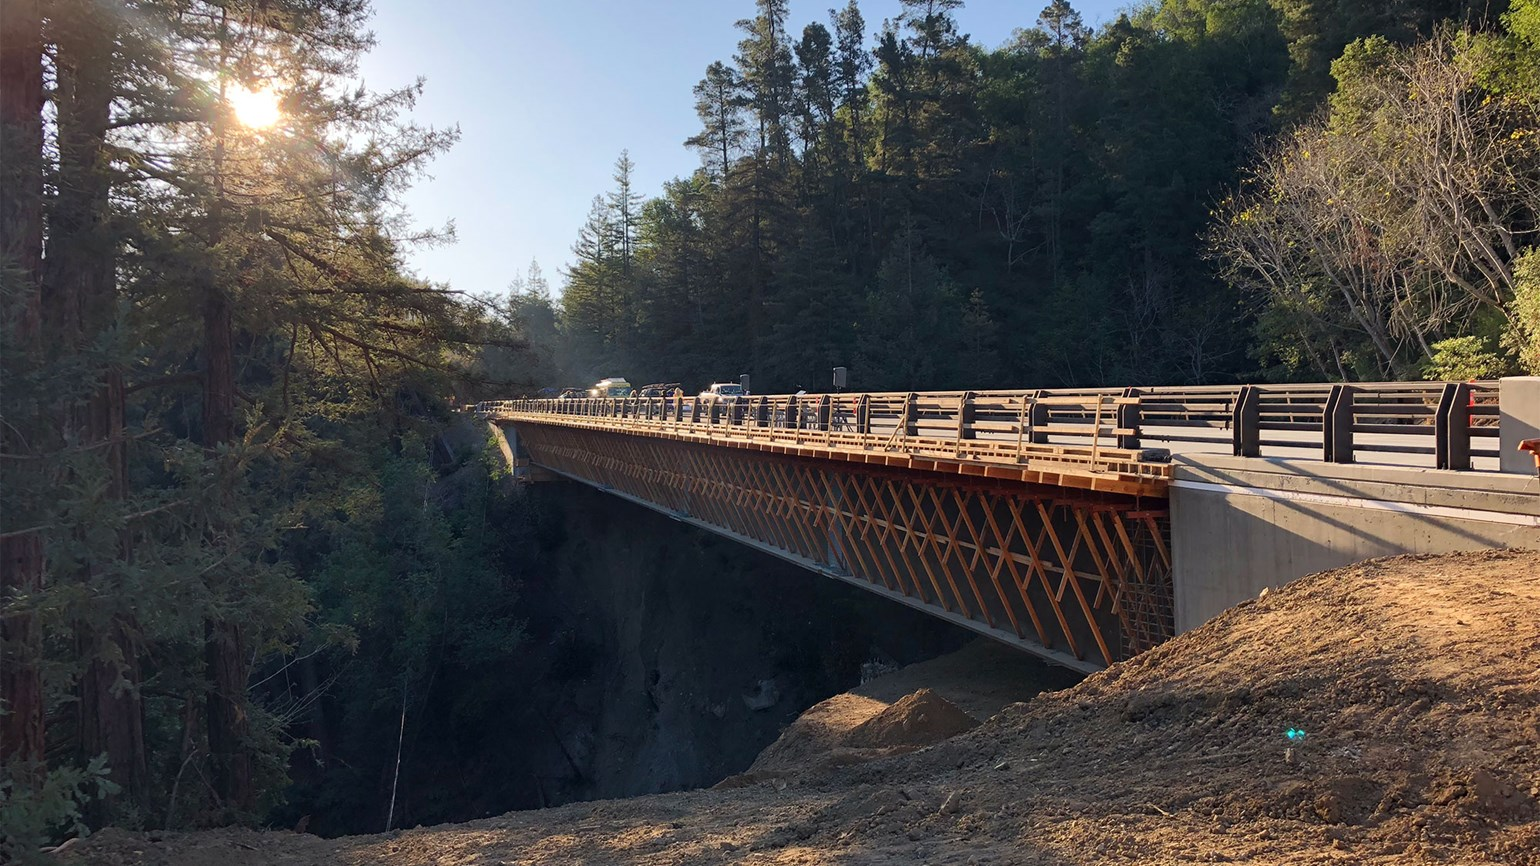 Big news for Big Sur: Pfeiffer Canyon Bridge rebuilt